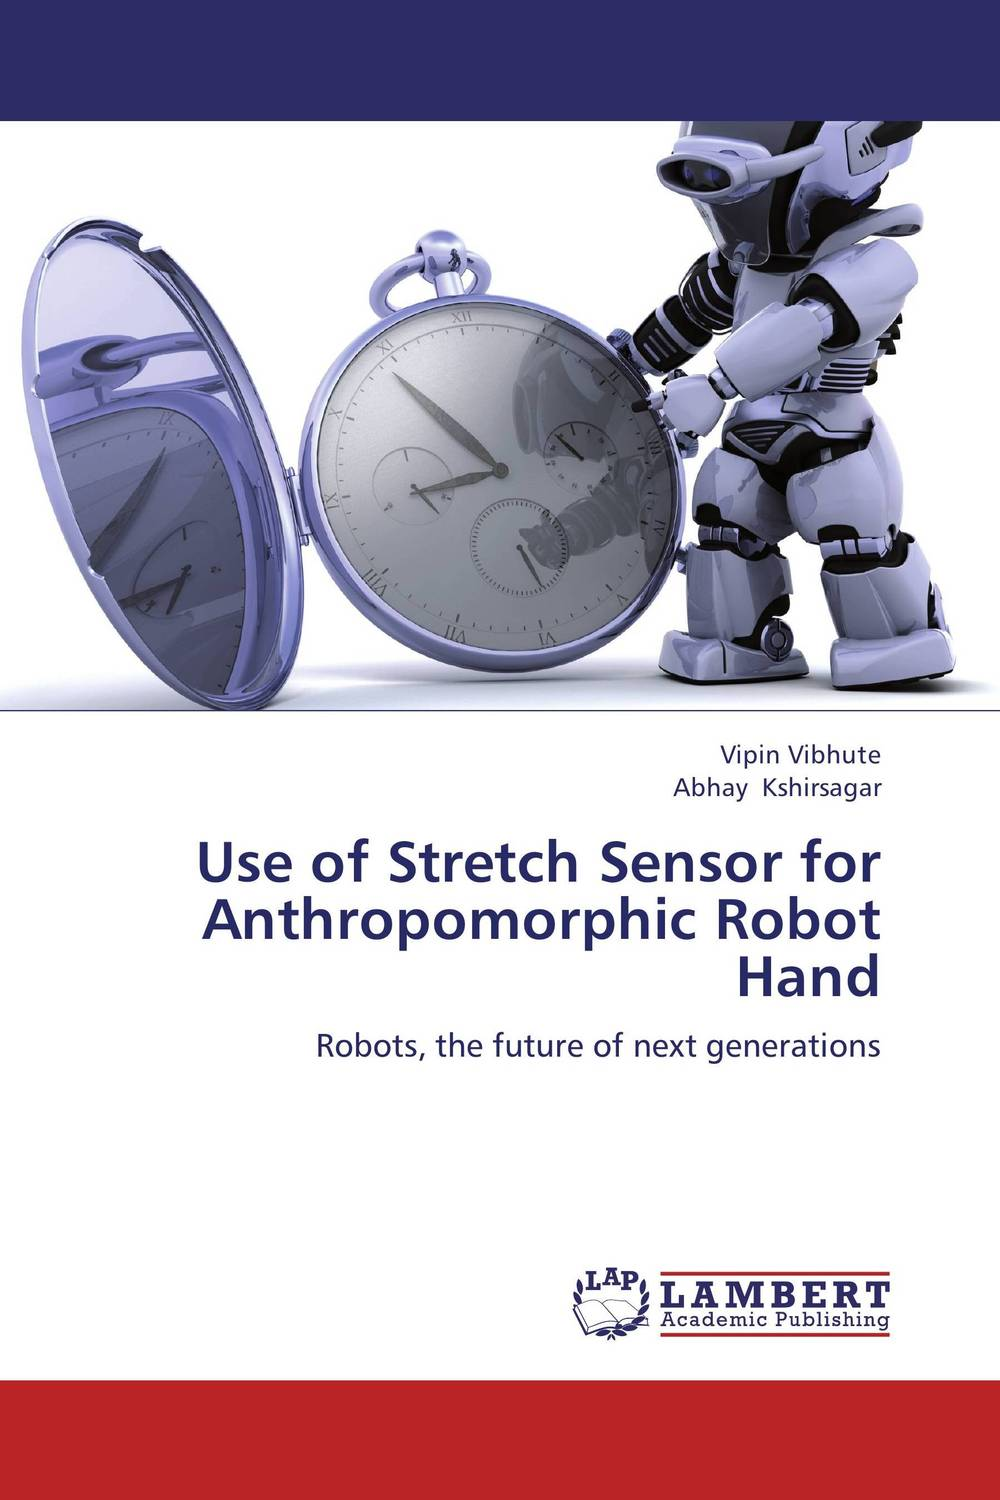 Use of Stretch Sensor for Anthropomorphic Robot Hand rotation movements of robot manipulators in 1